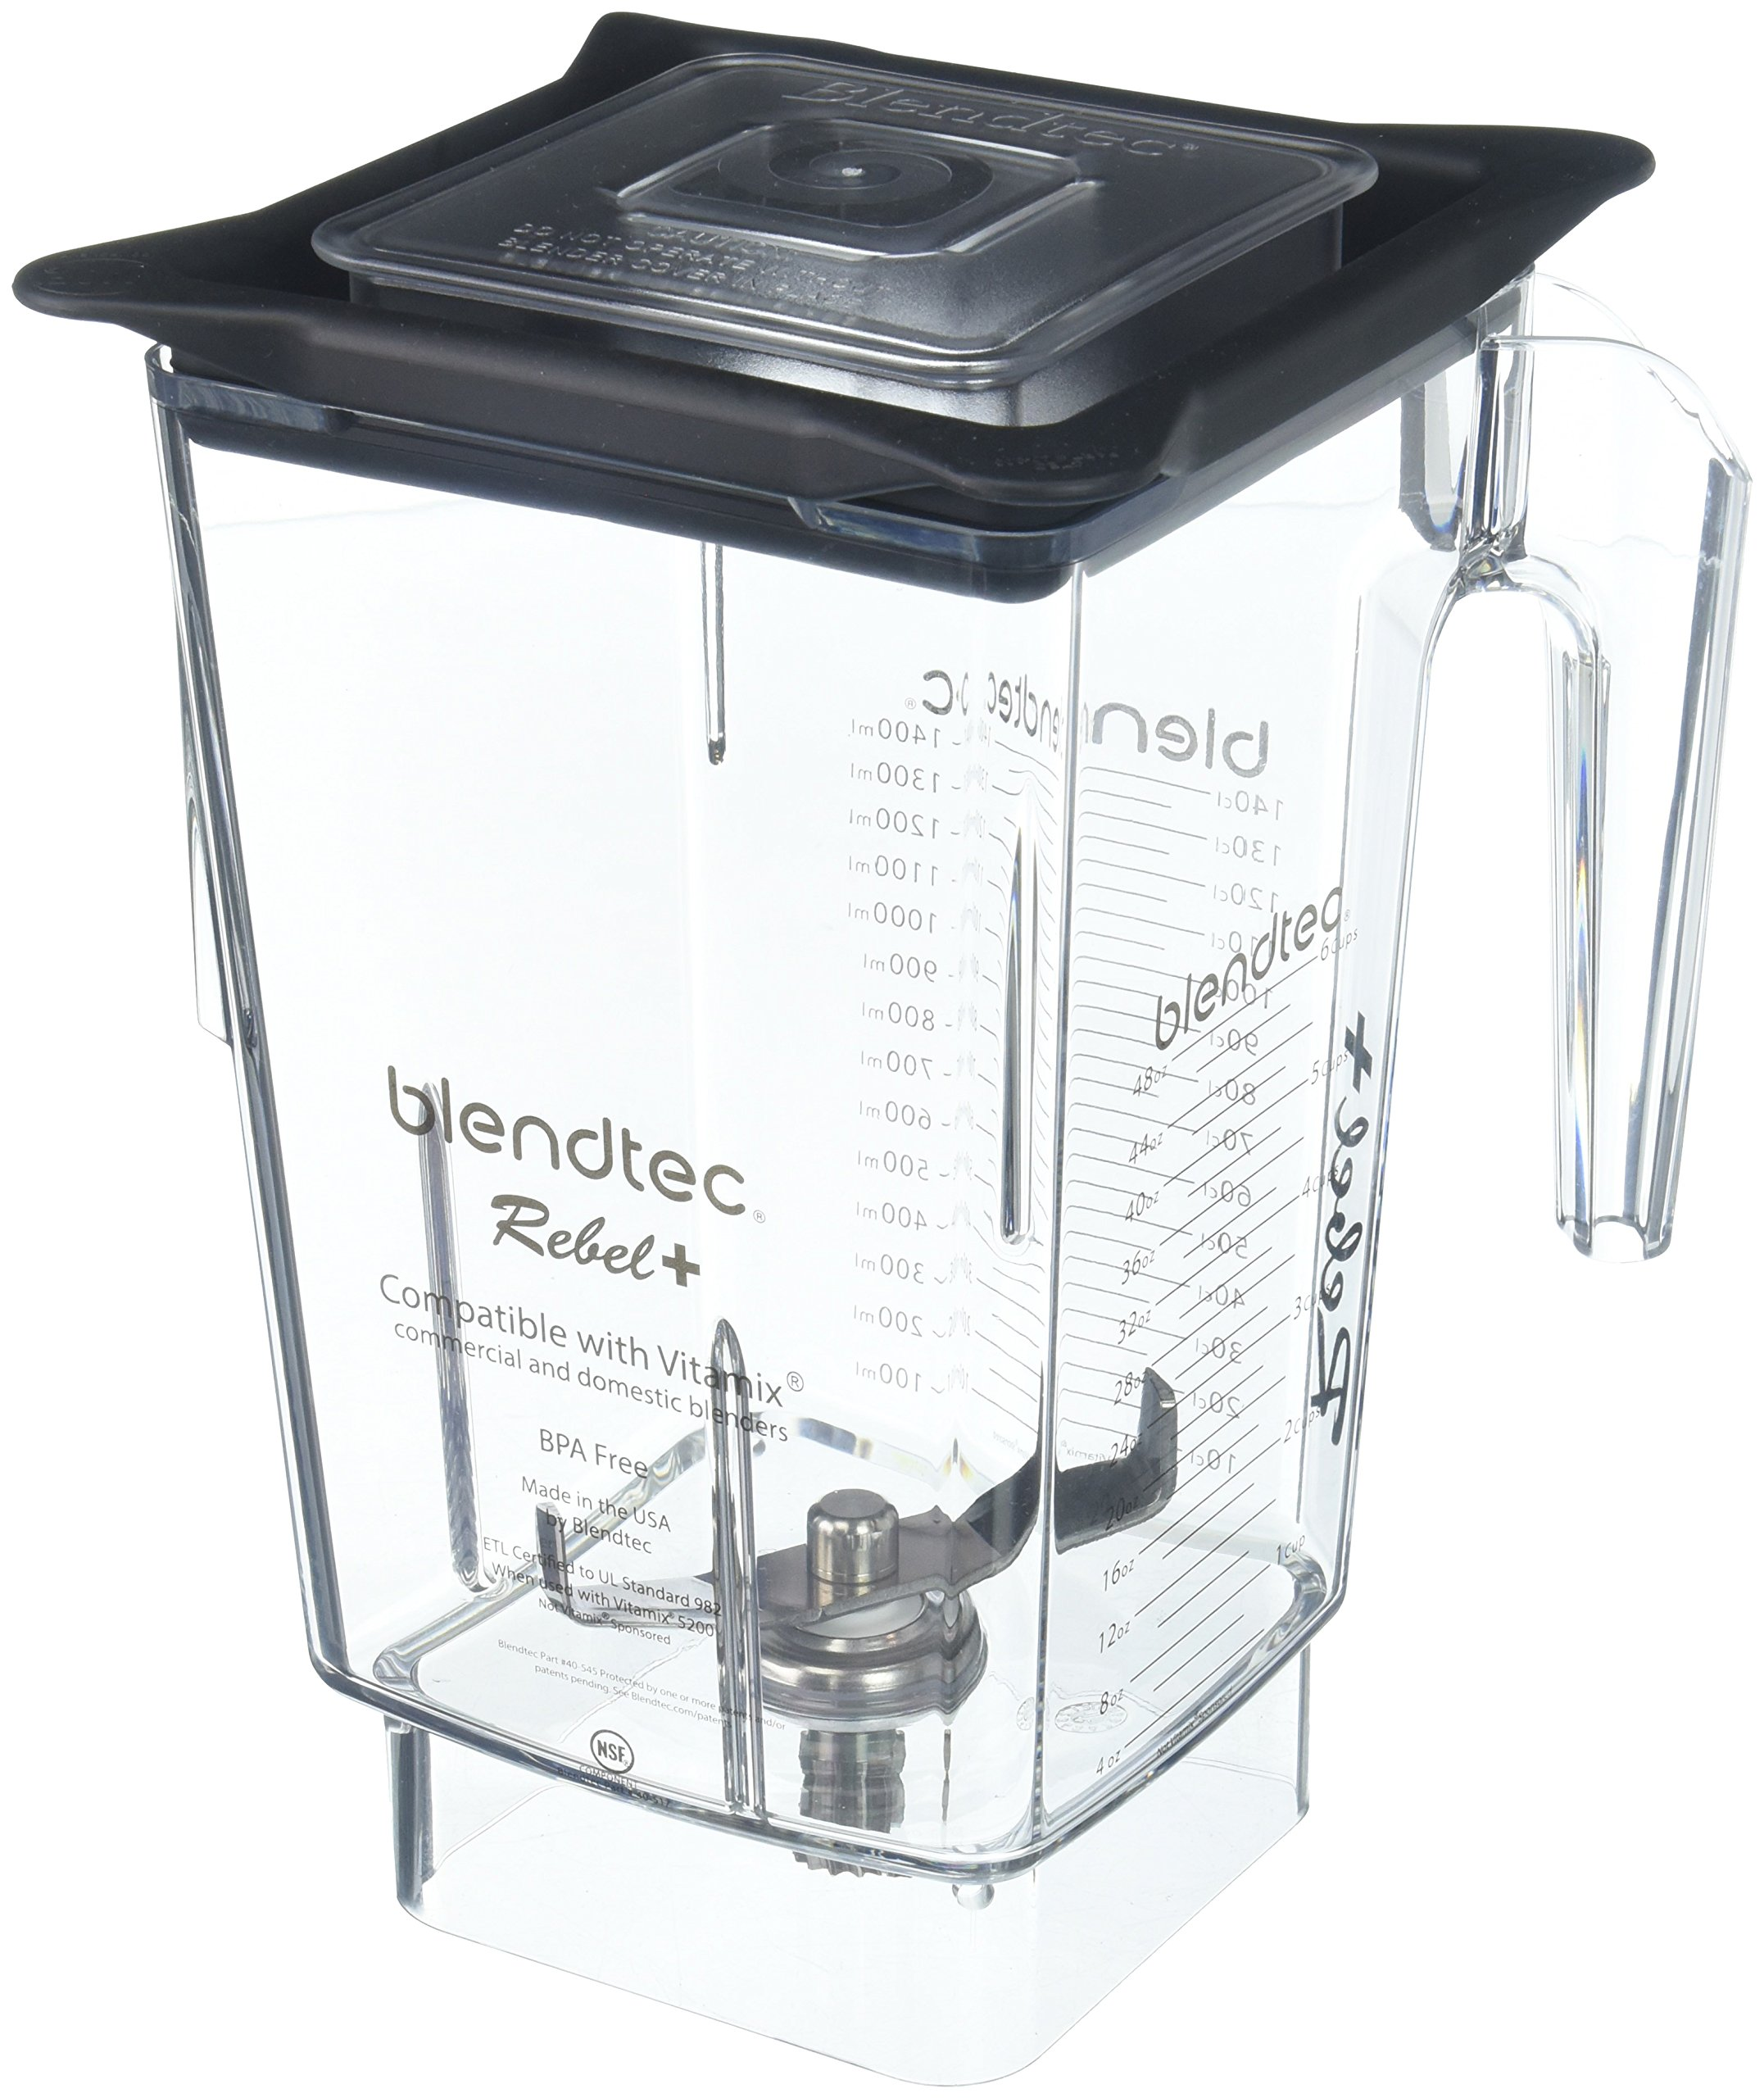 Blendtec Rebel+ Replacement Container for Vitamix Commercial & Residential 90oz